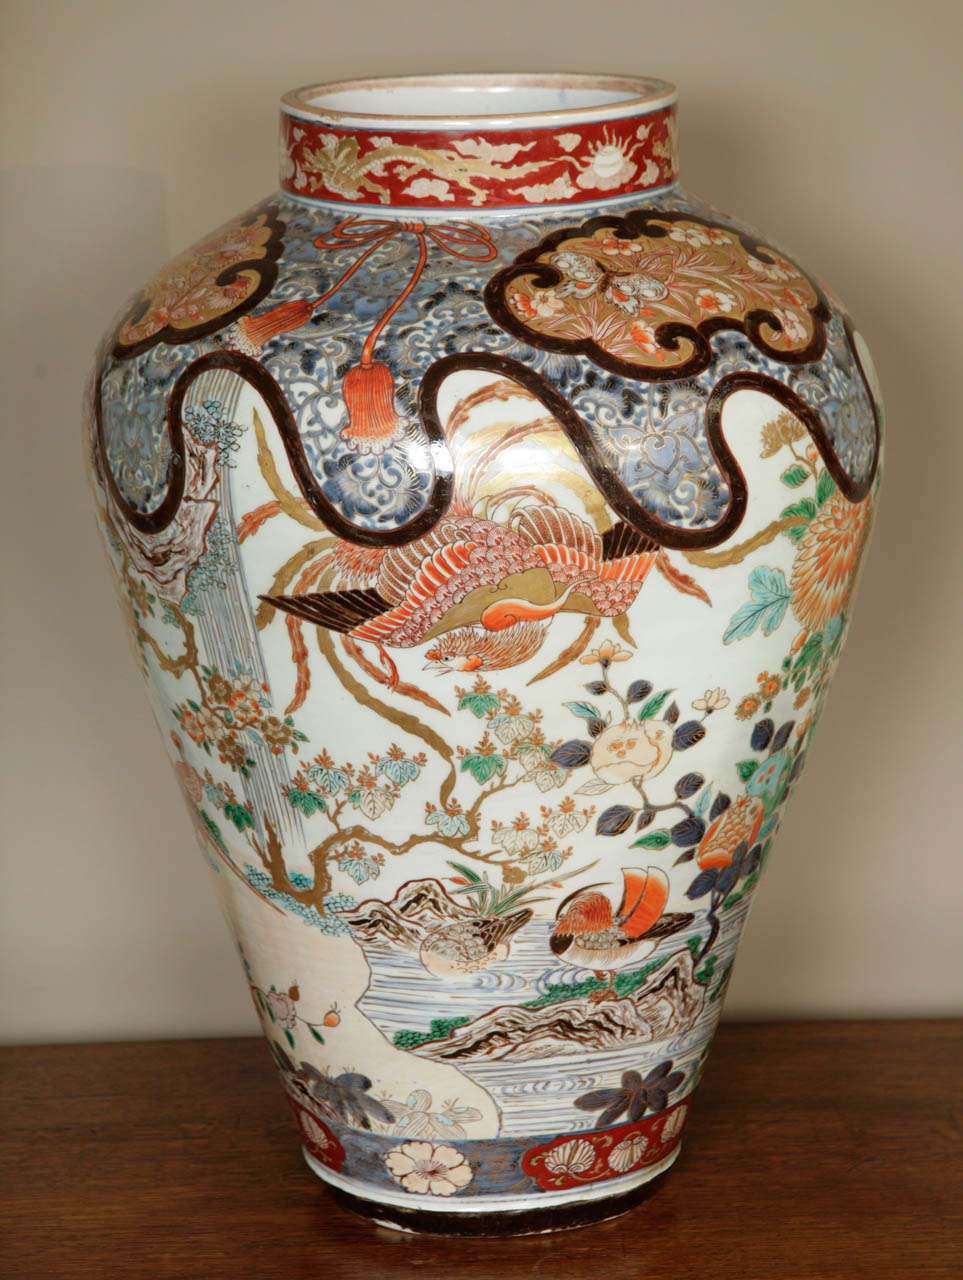 A spectacular and huge early 18th century Japanese Imari vase, circa 1700 showing a plethora of exotic birds such as ducks, pheasants, phoenixes and birds of paradise. All set in a landscape with waterfalls, ponds and rocks. Decorated throughout